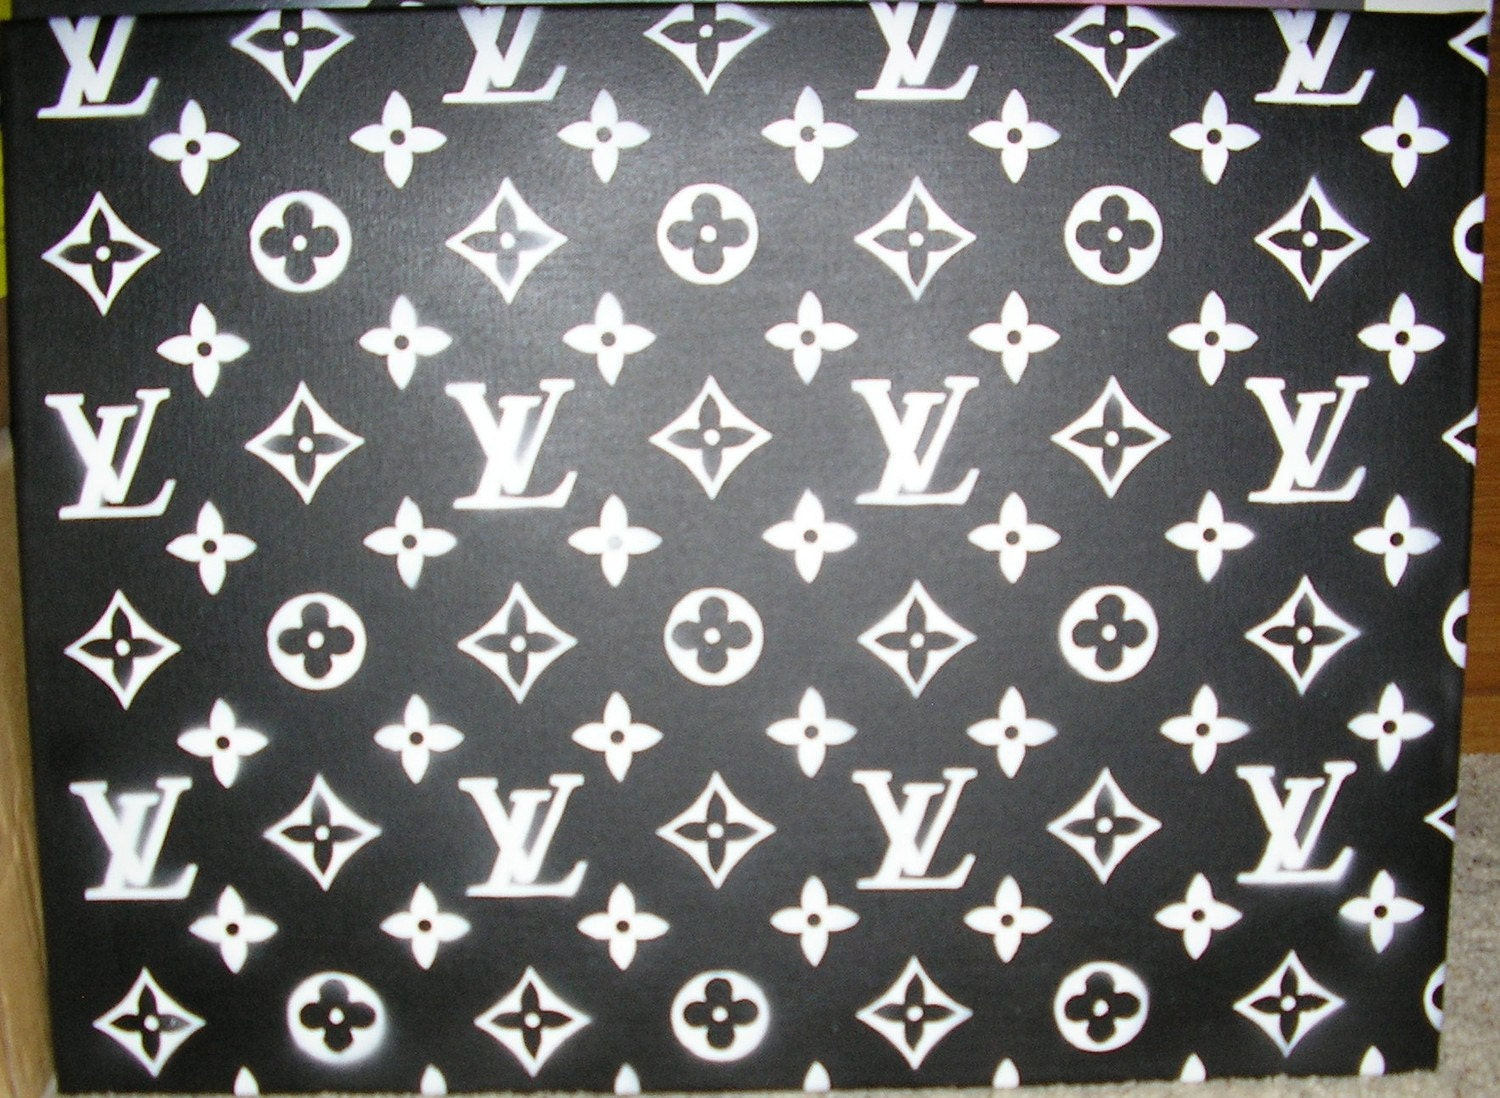 louis vuitton pattern original painting by badams12 on etsy. Black Bedroom Furniture Sets. Home Design Ideas